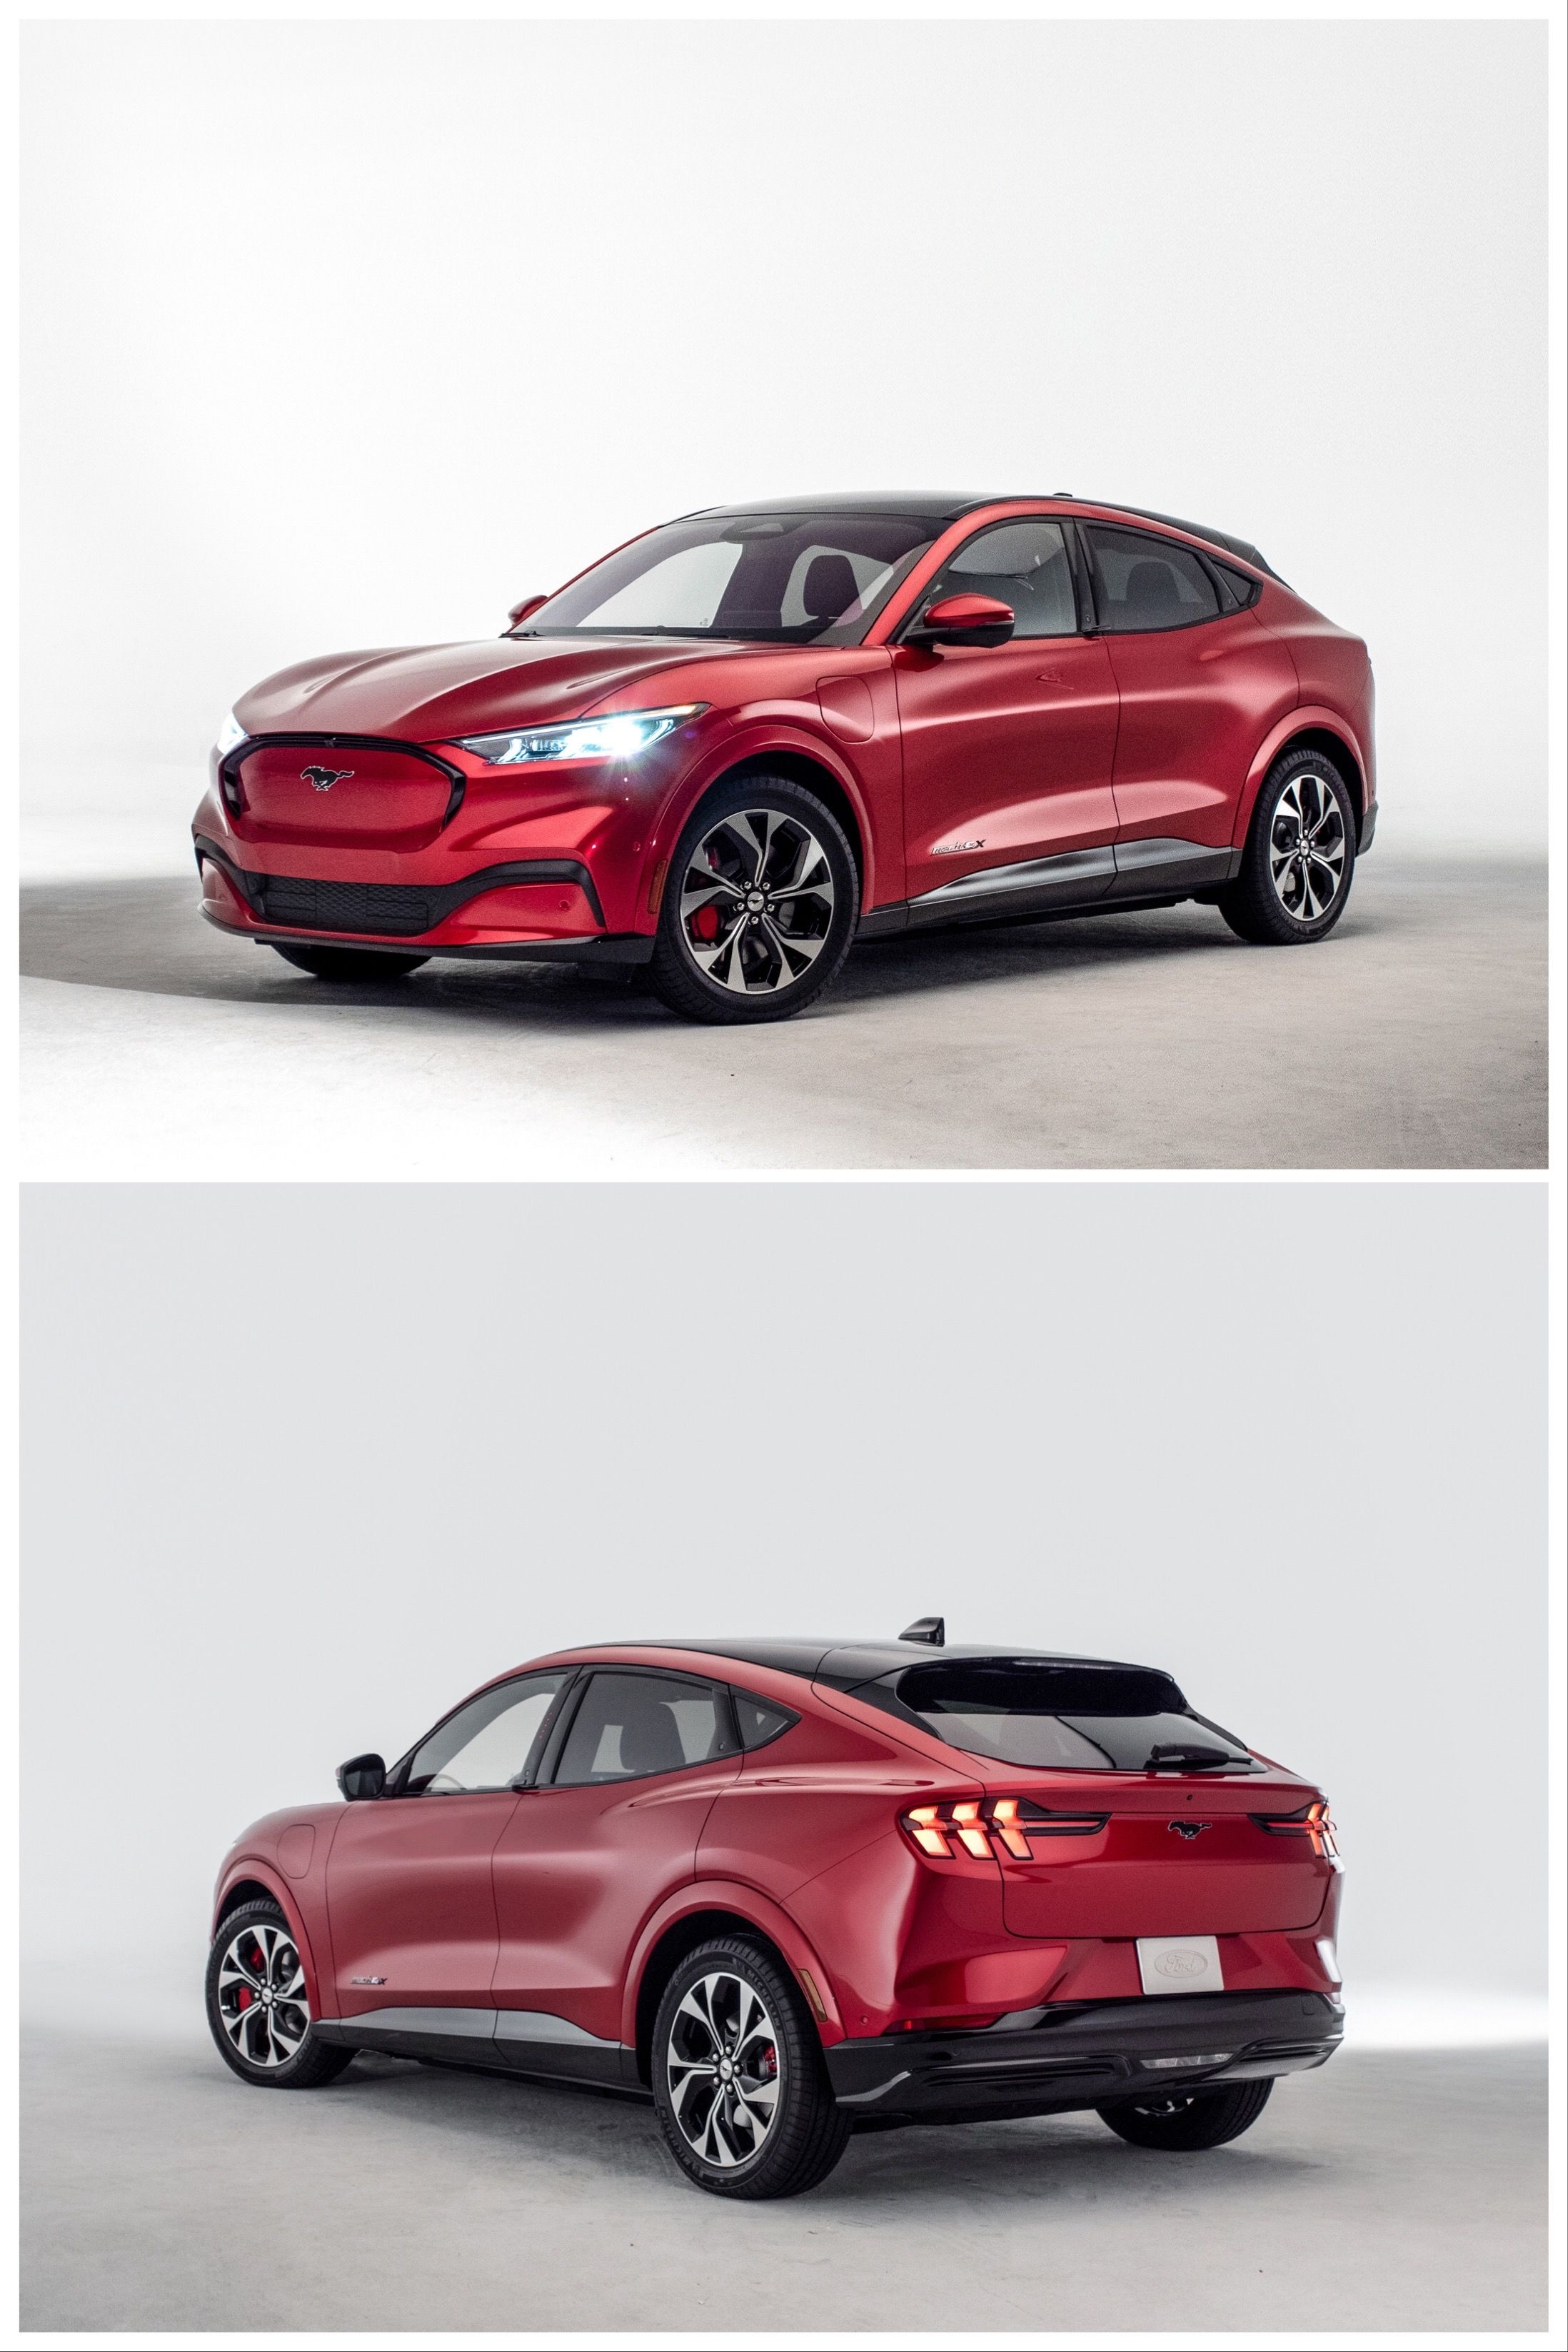 2021 Ford Mustang Mach E Electric Suv First Look Specs Range More Ford Mustang E Electric Ford Mustang Suv